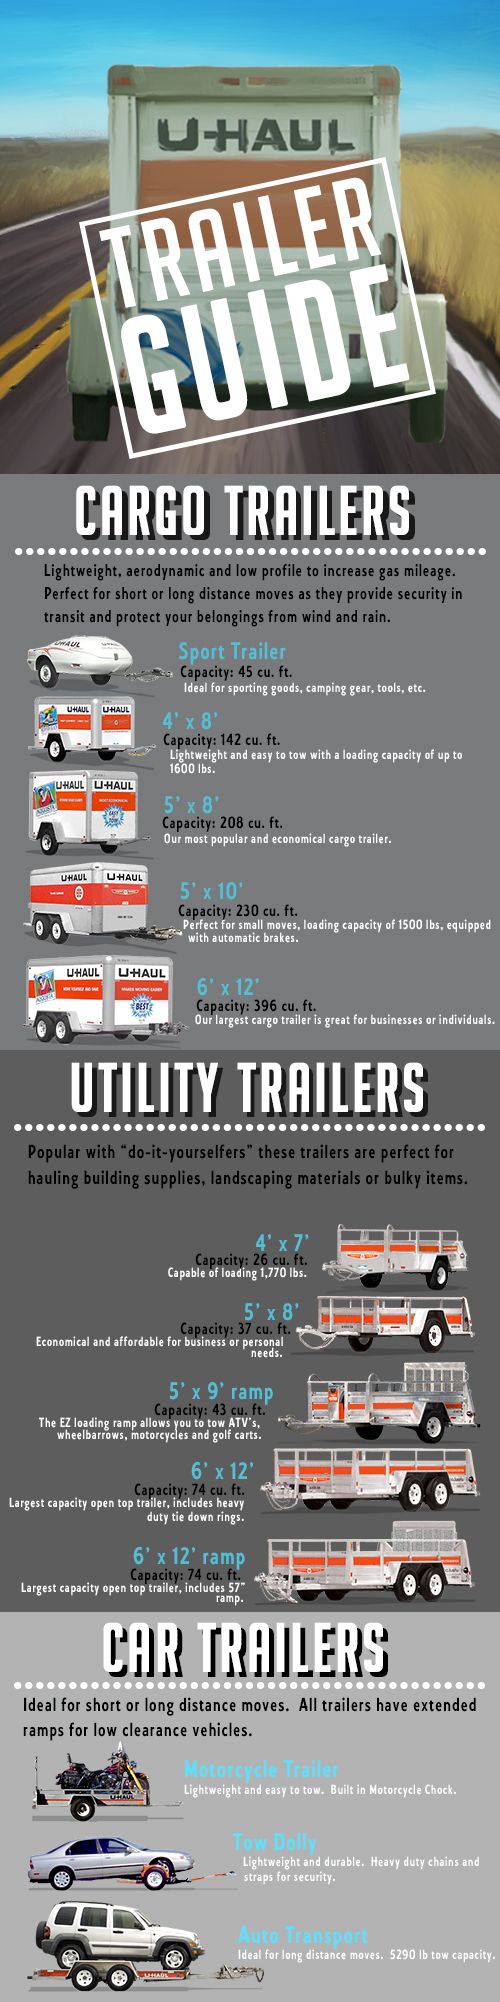 Determine which trailer is best for your next rental.